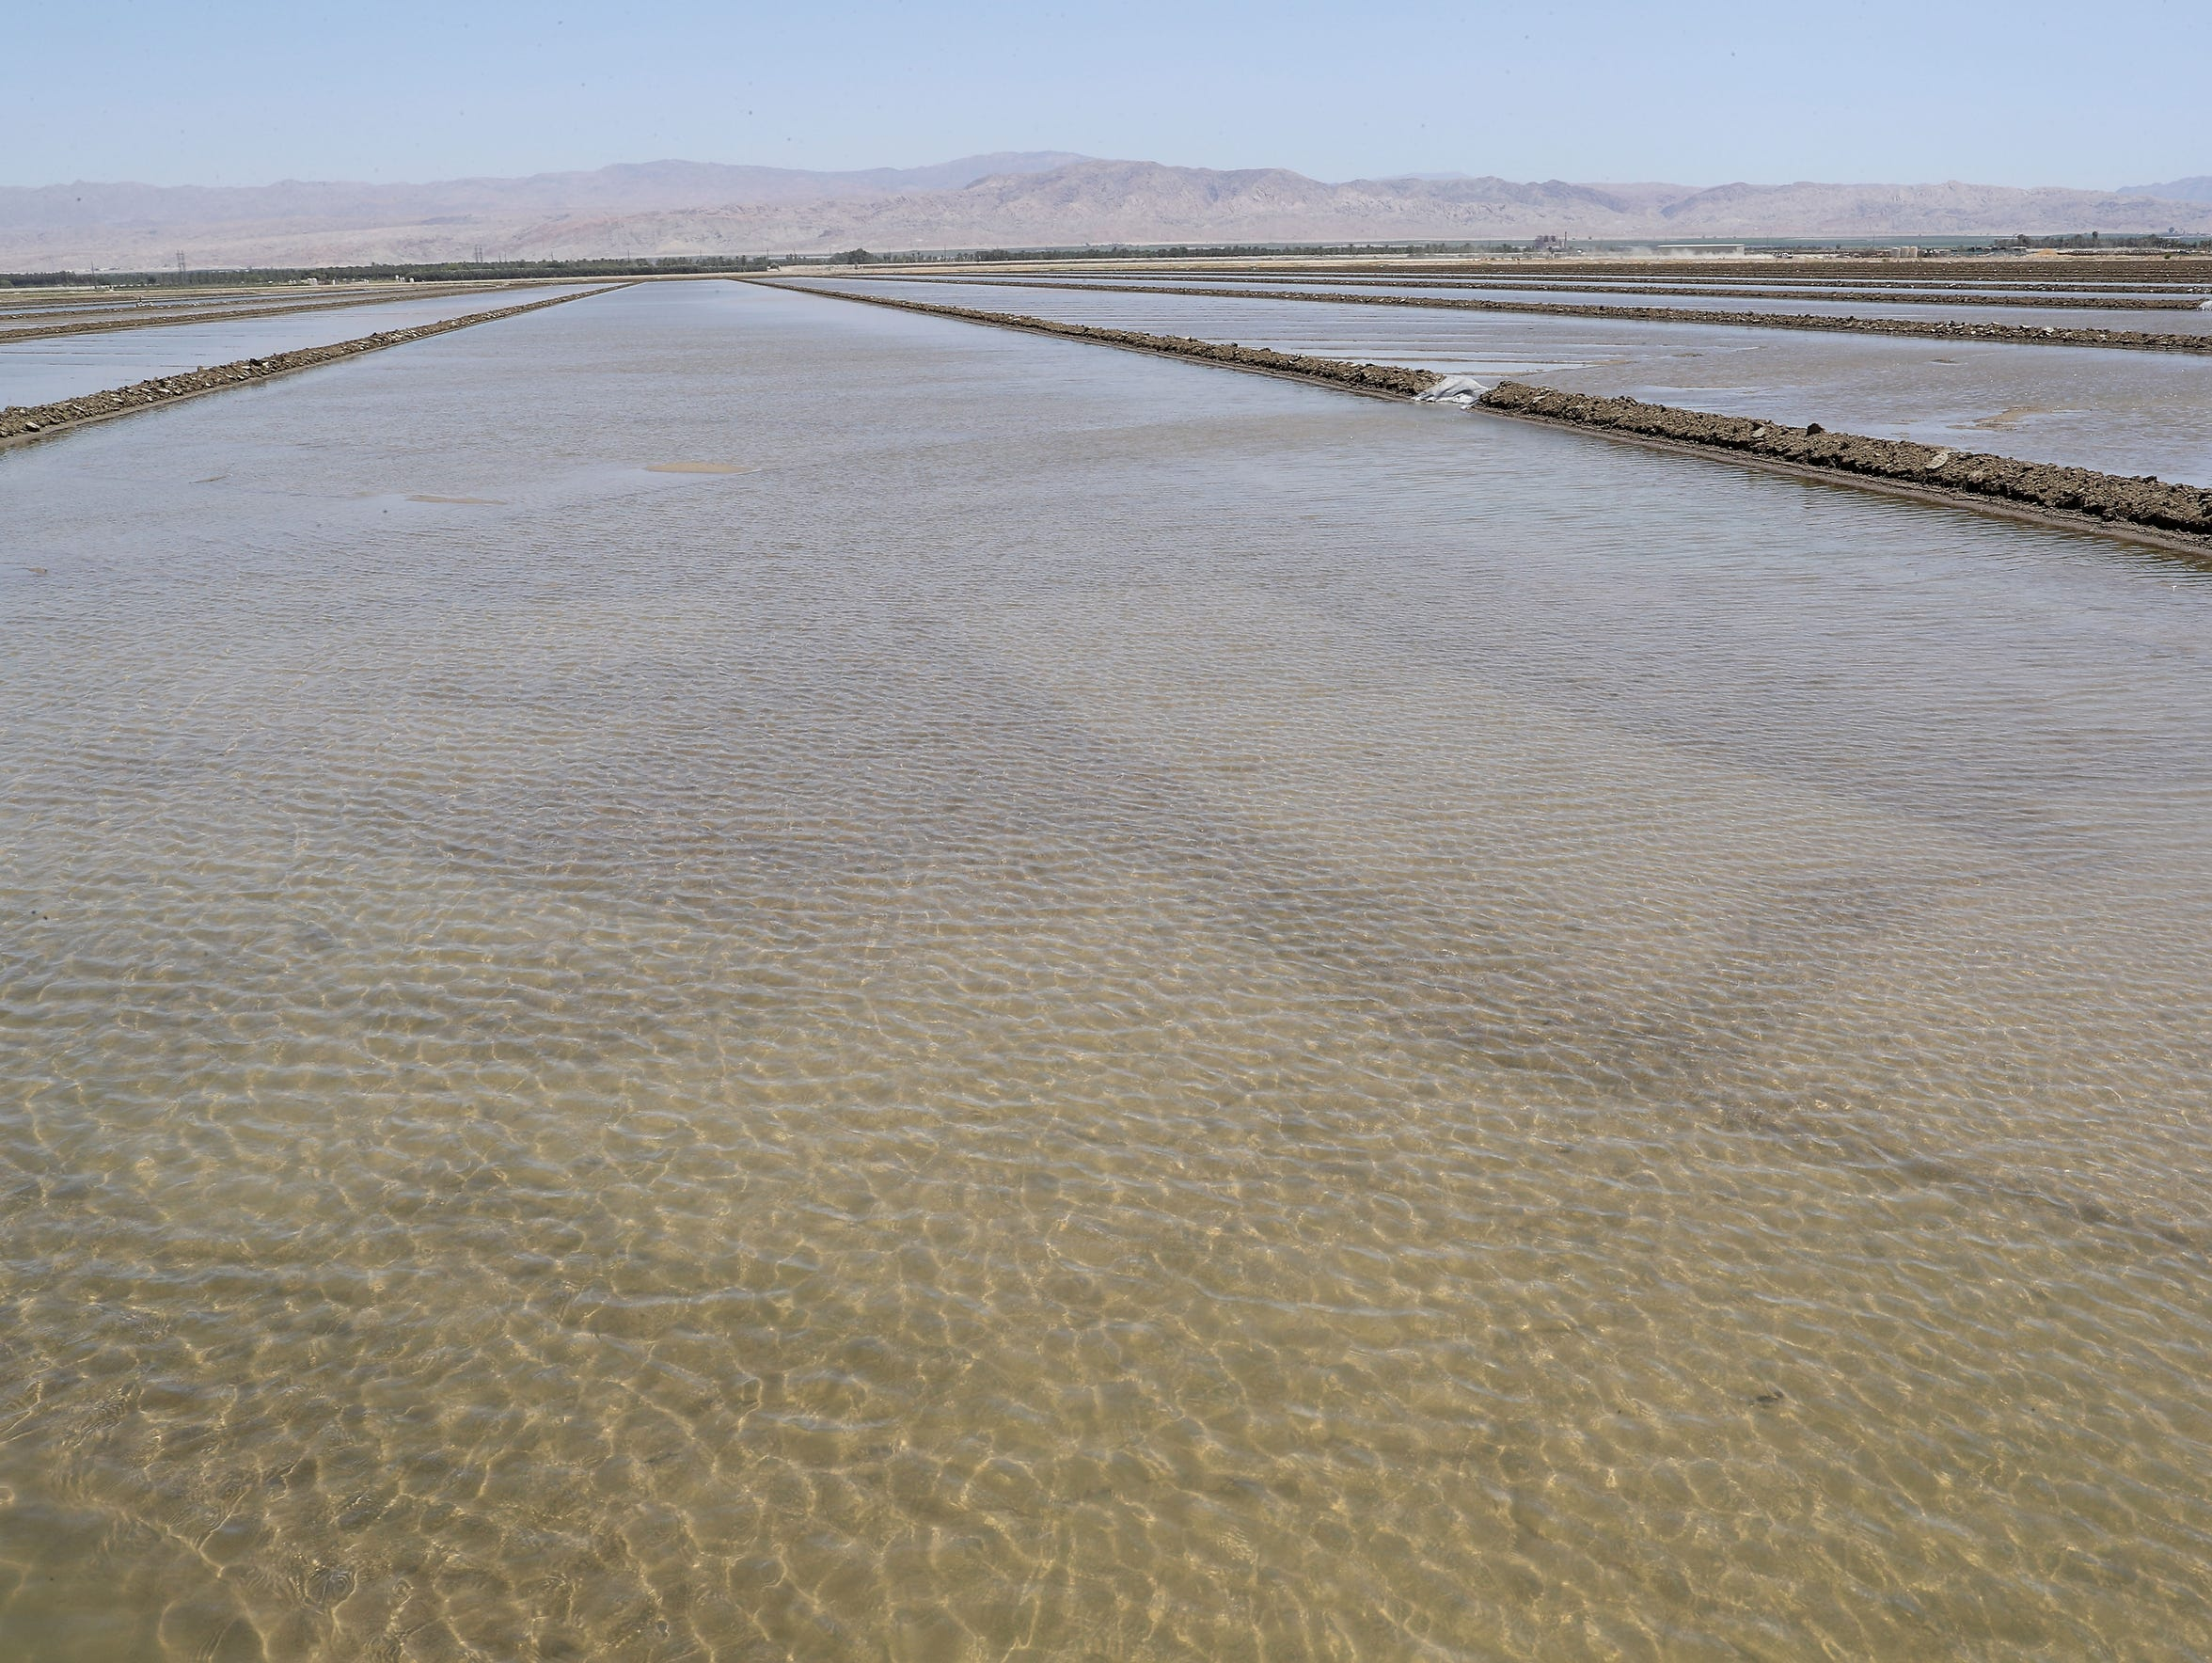 Water covers a field in Thermal on June 13, 2018.